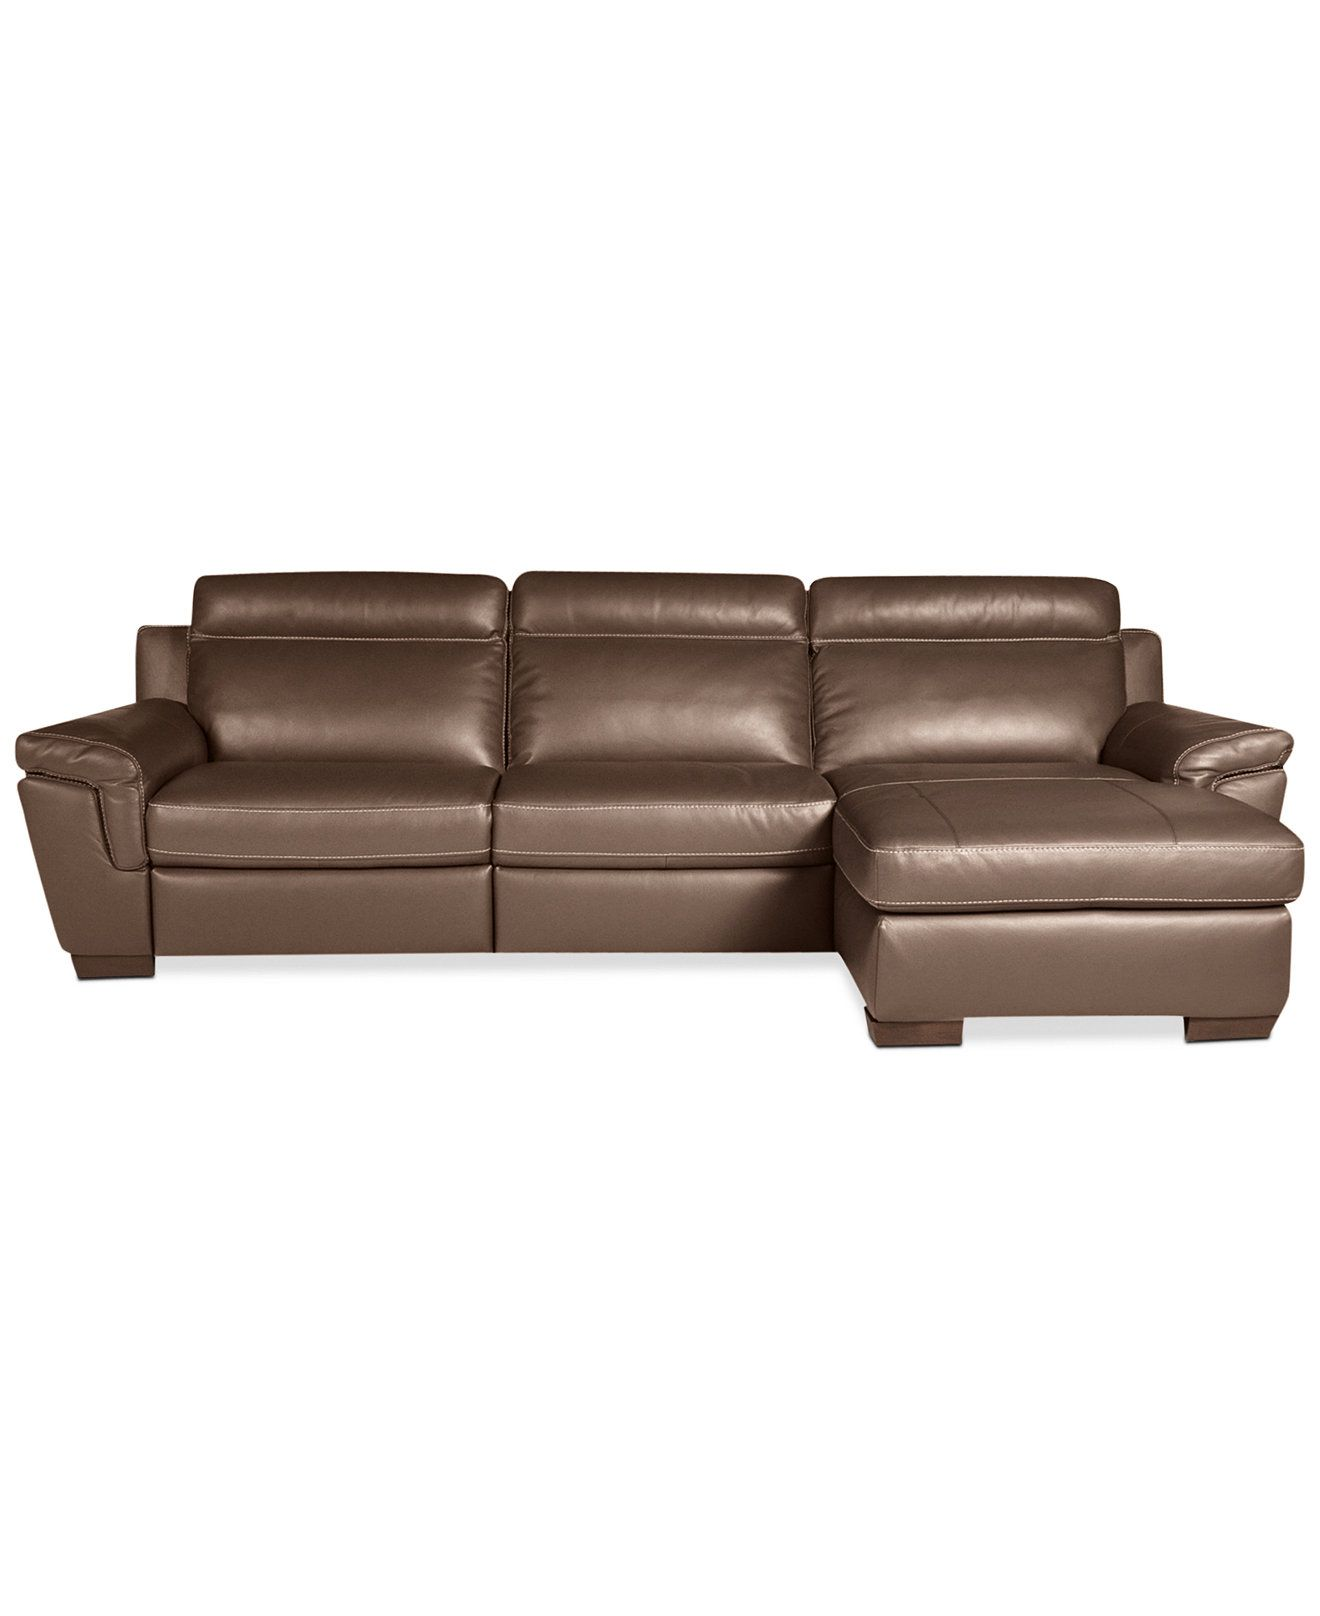 Julius 3 pc Leather Sectional Sofa with Chaise and 1 Power